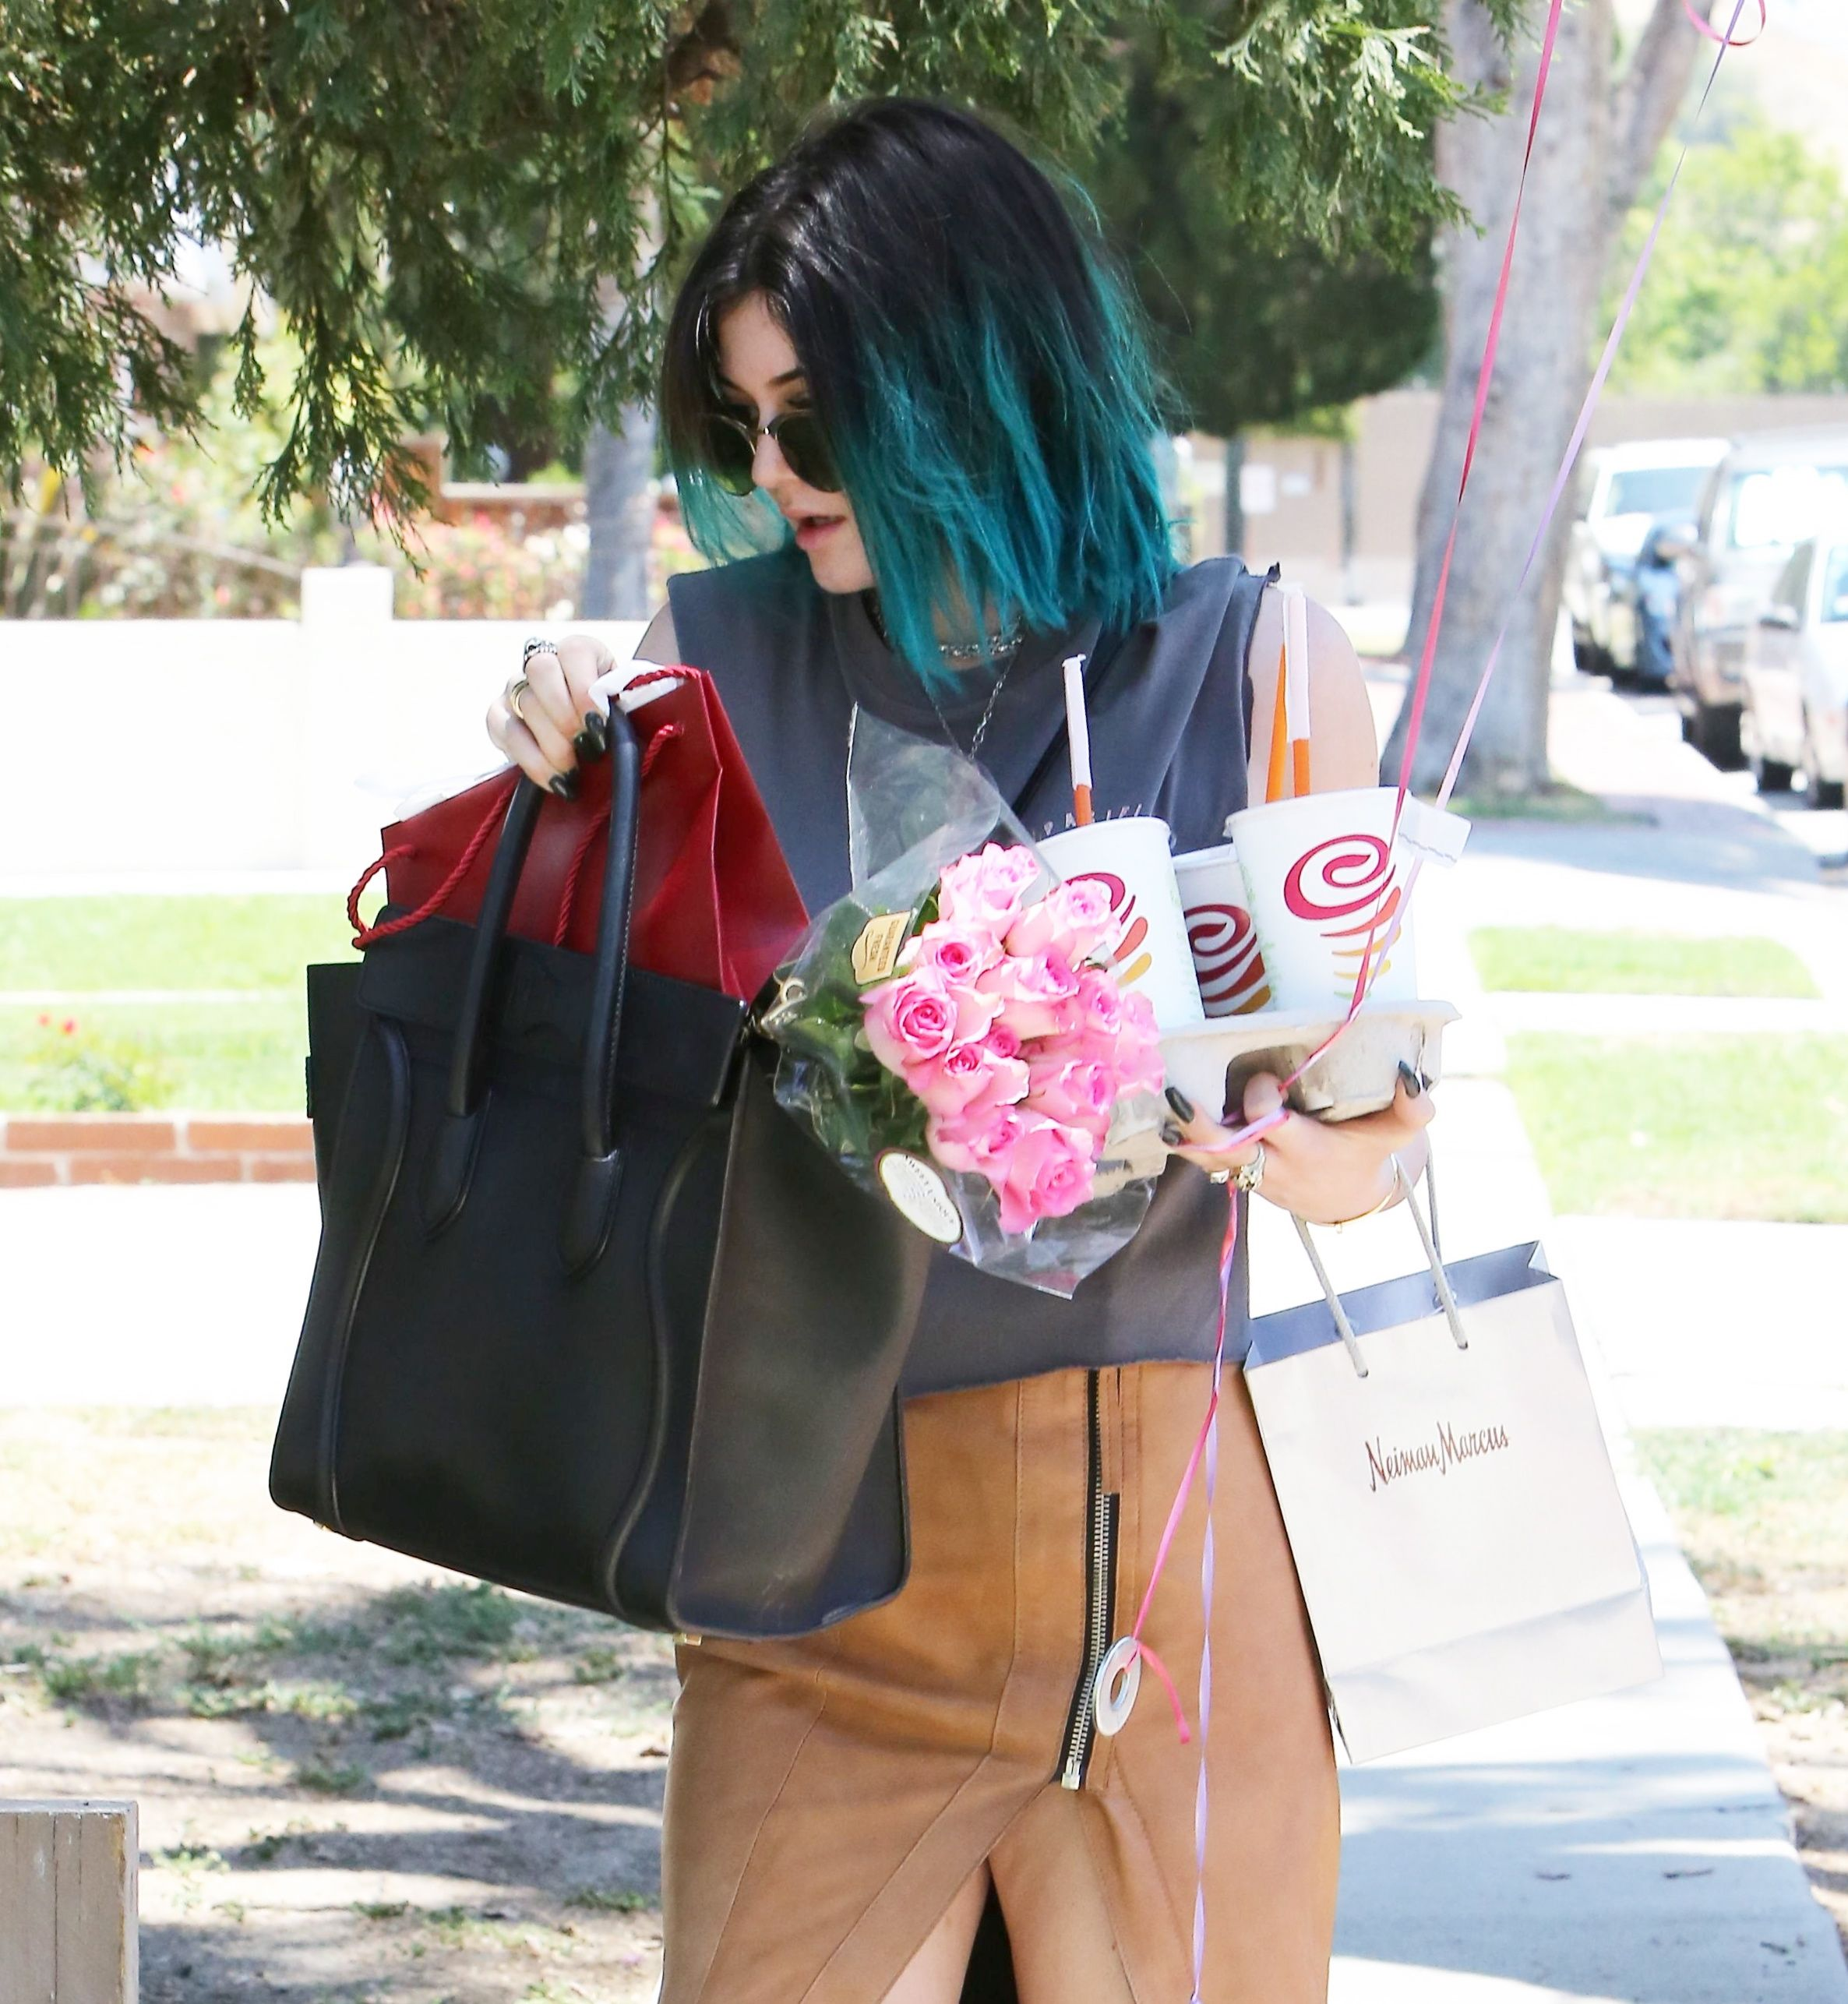 Kylie Jenner – out in LA 09.06.14